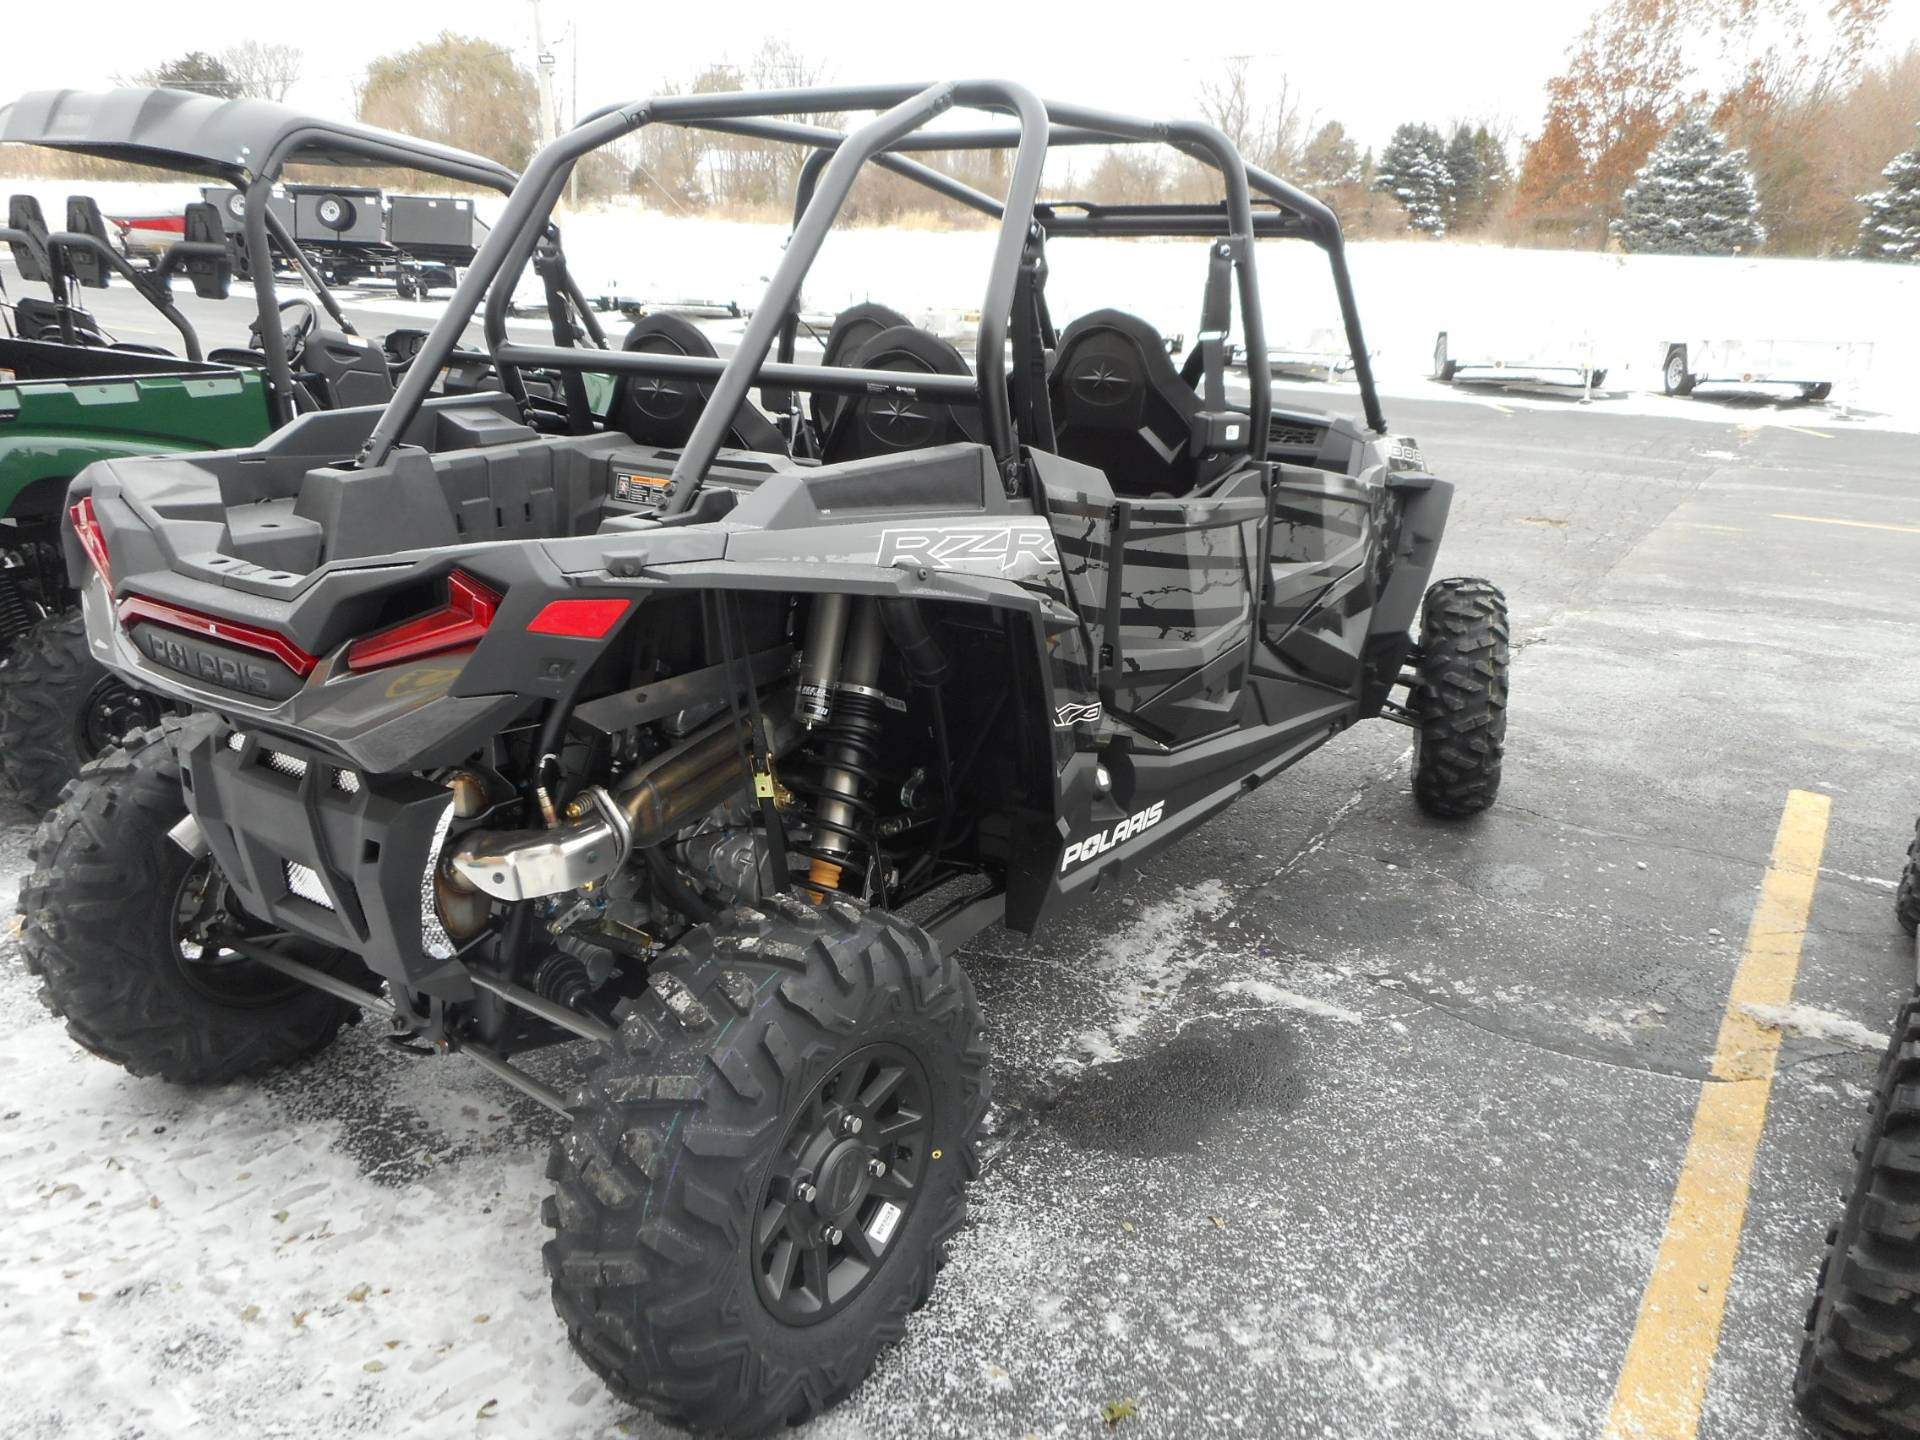 2020 Polaris RZR XP 4 1000 Limited Edition in Belvidere, Illinois - Photo 8